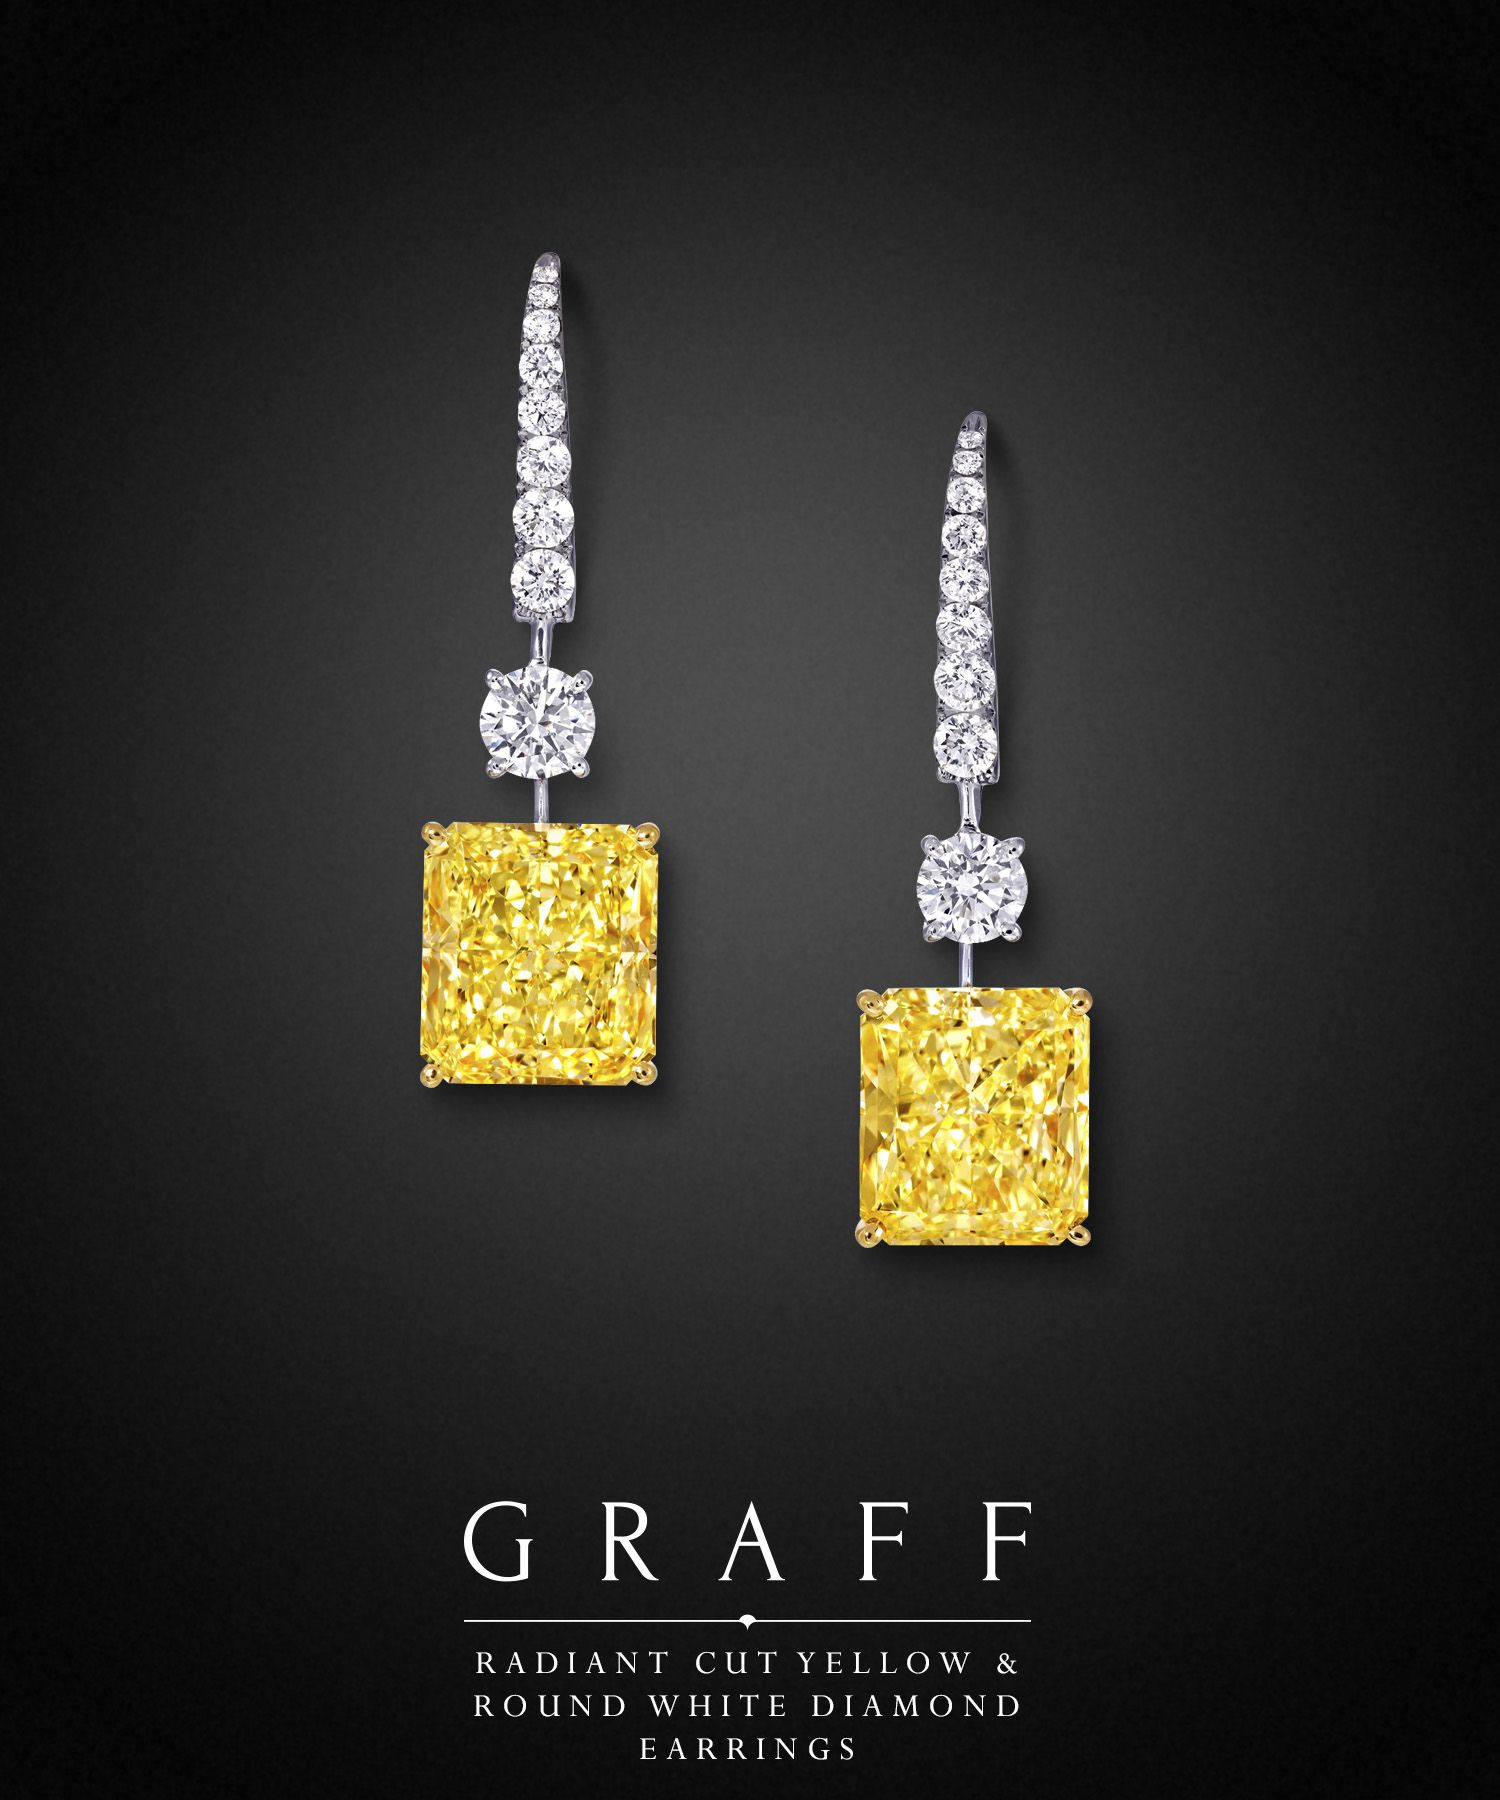 Graff Diamonds Radiant Cut Yellow Round White Diamond Earrings